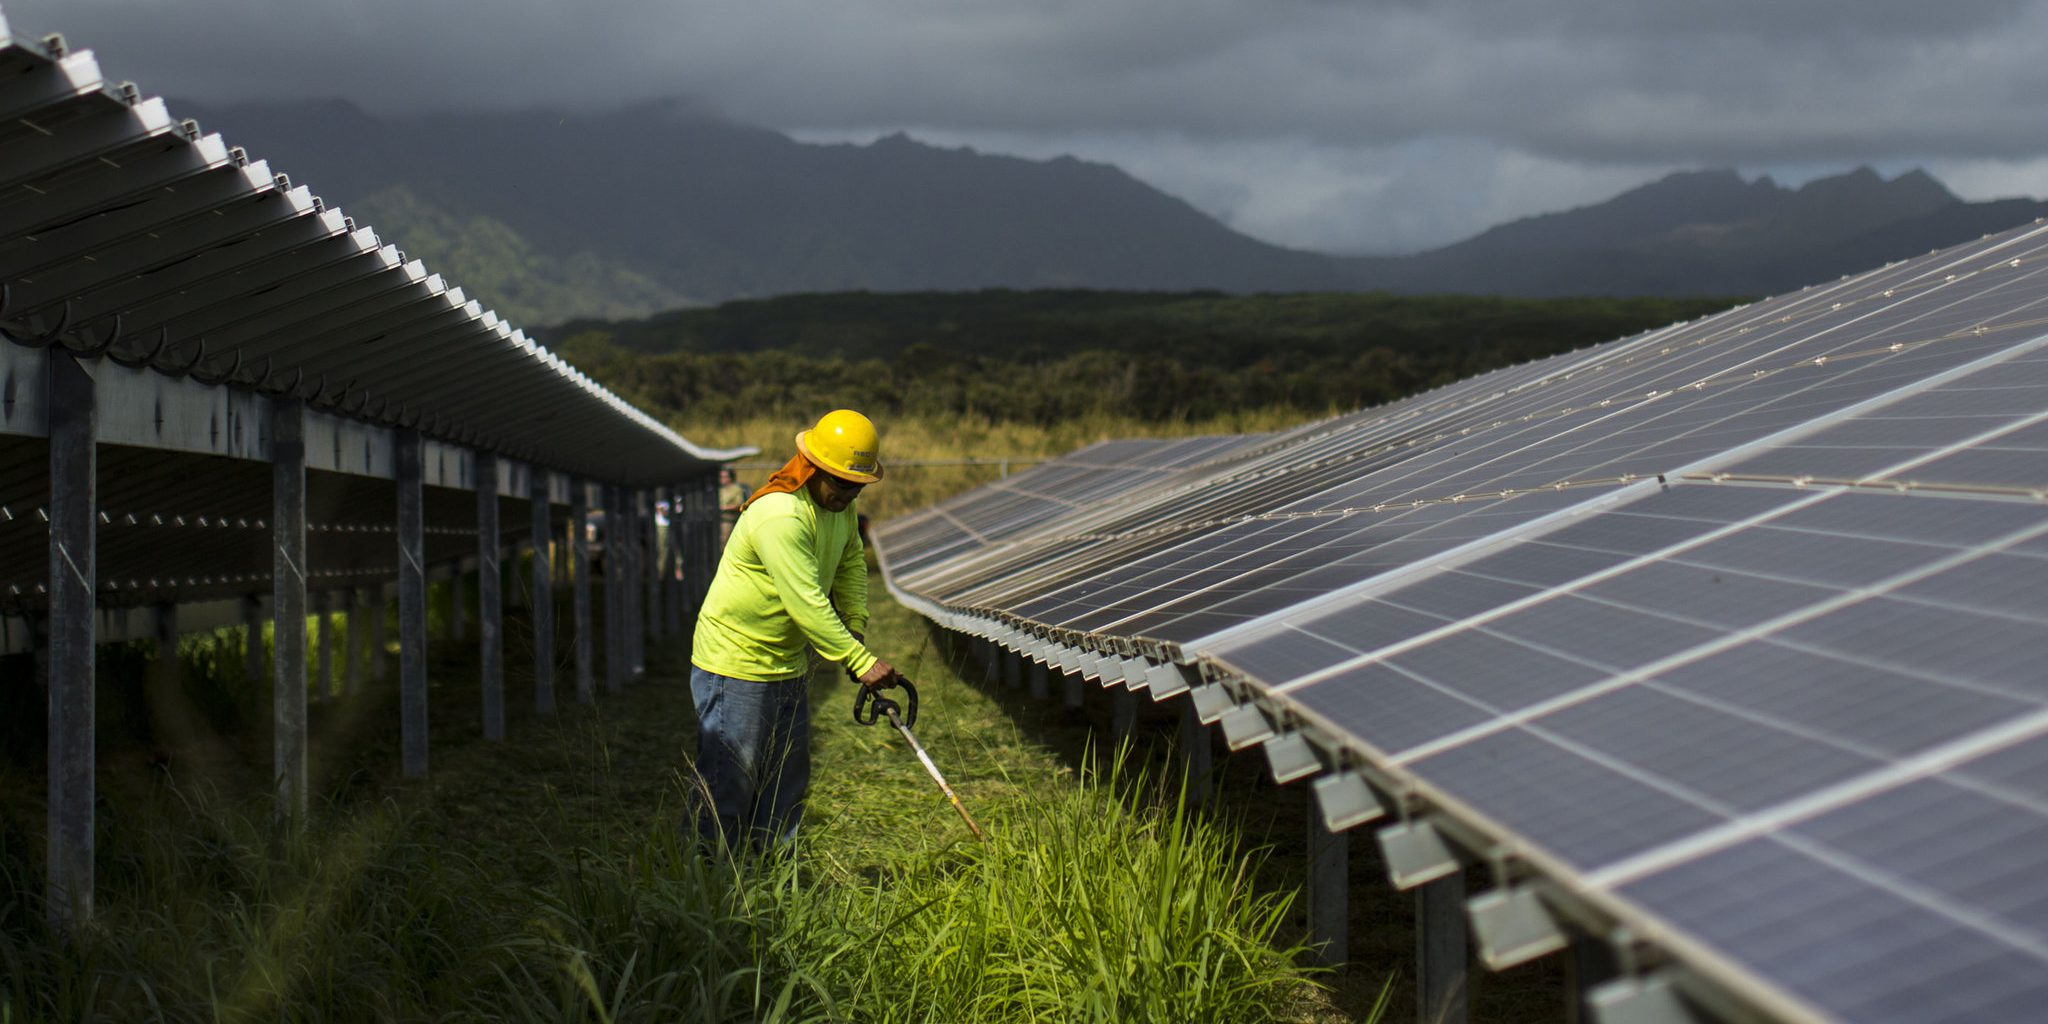 hawaii-grid-solar-superjumbo